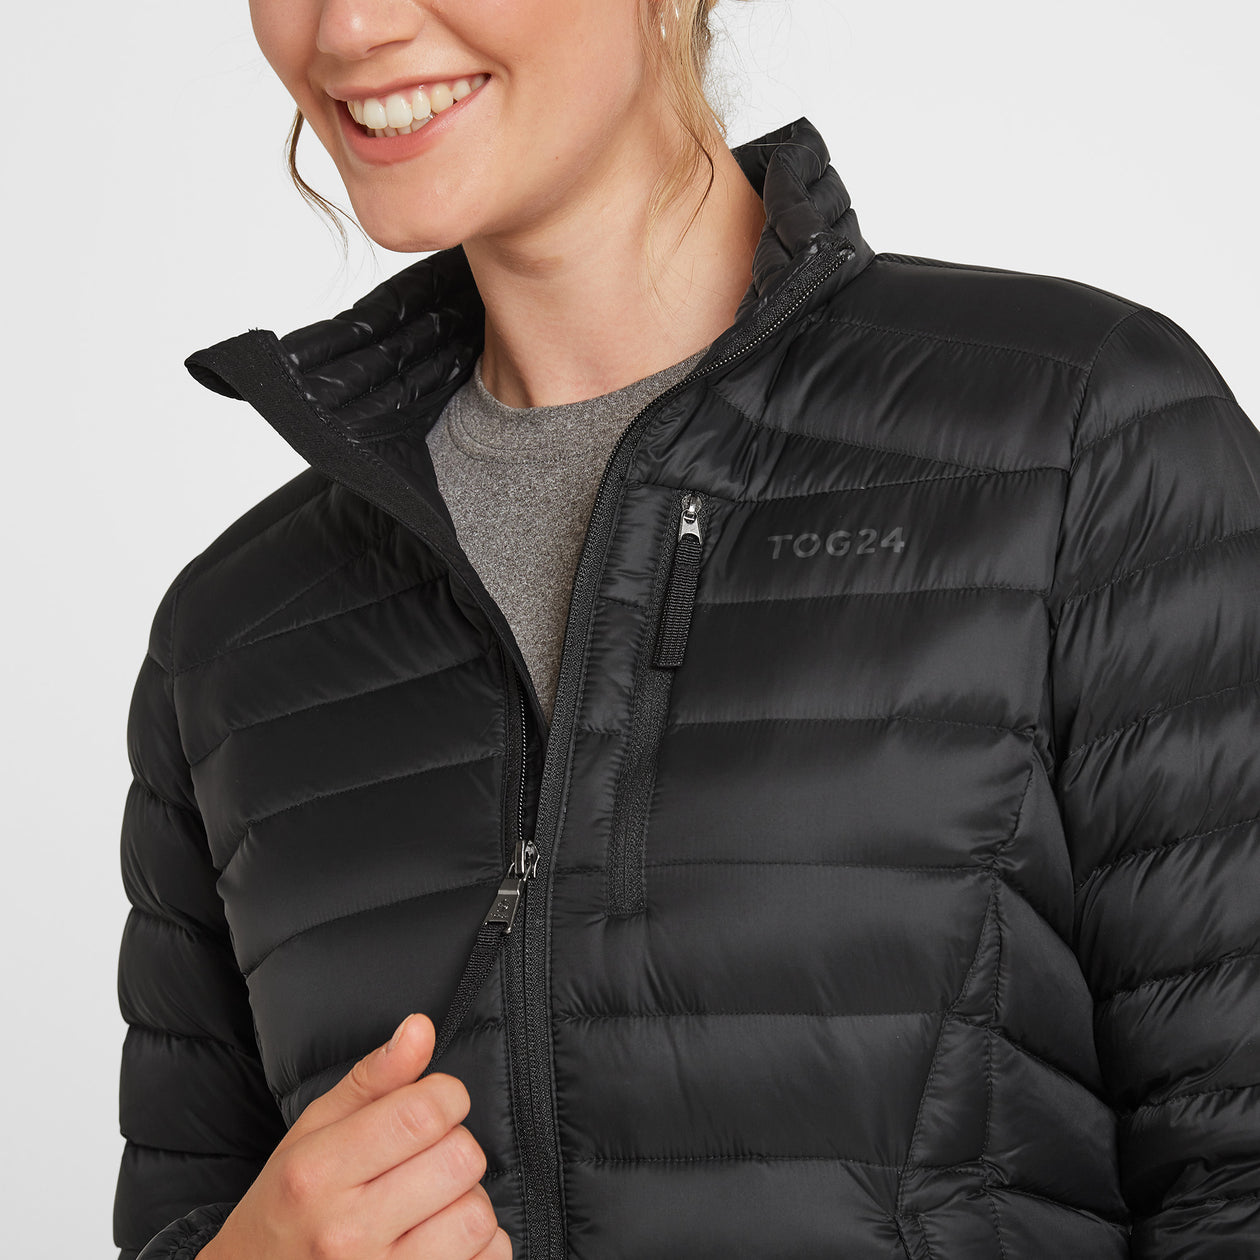 Drax Womens Funnel Down Jacket - Black image 4